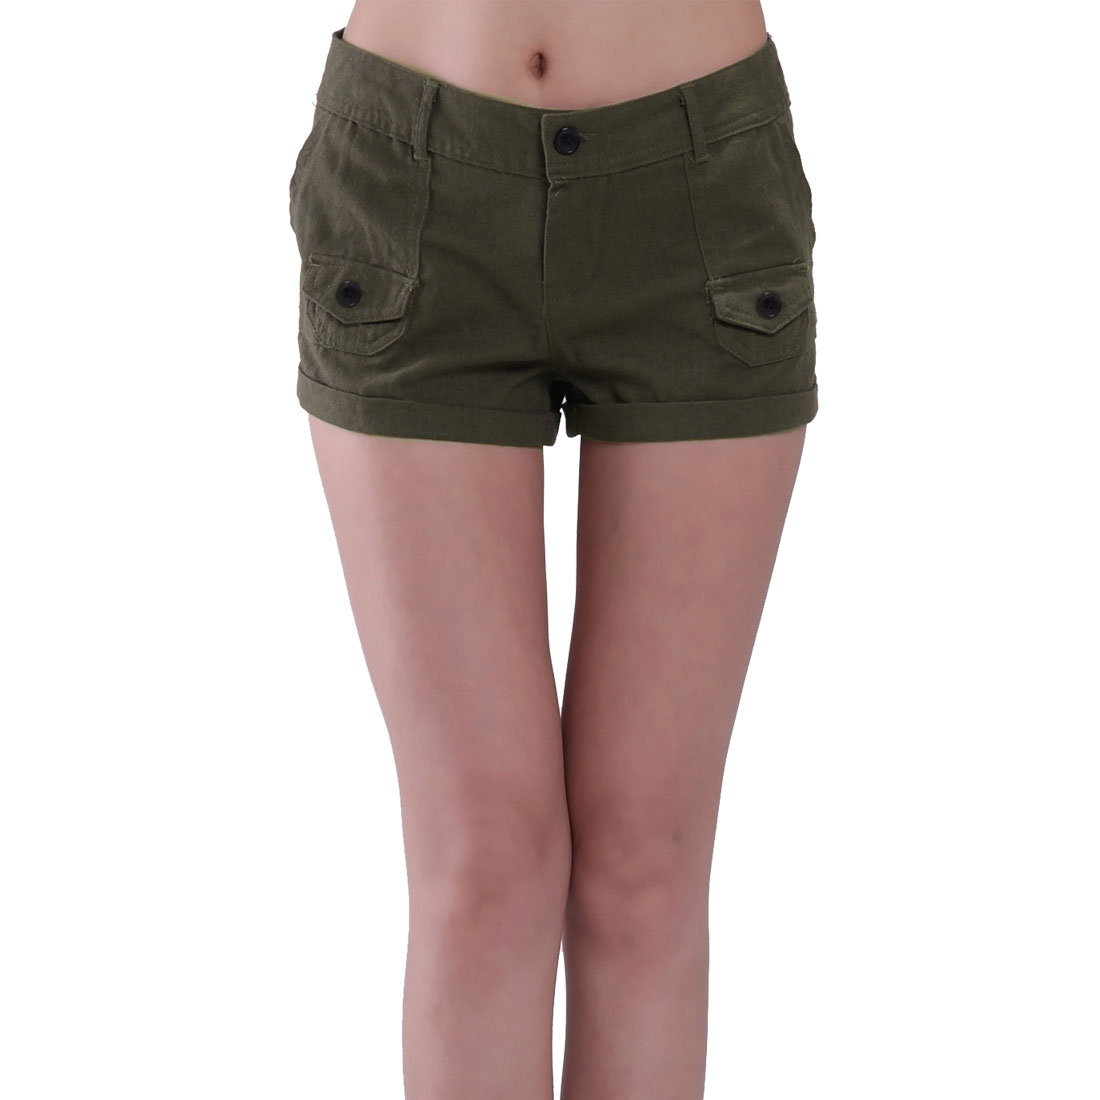 Slanting Pockets Belt Loop Button Closure Shorts Brown L for Women